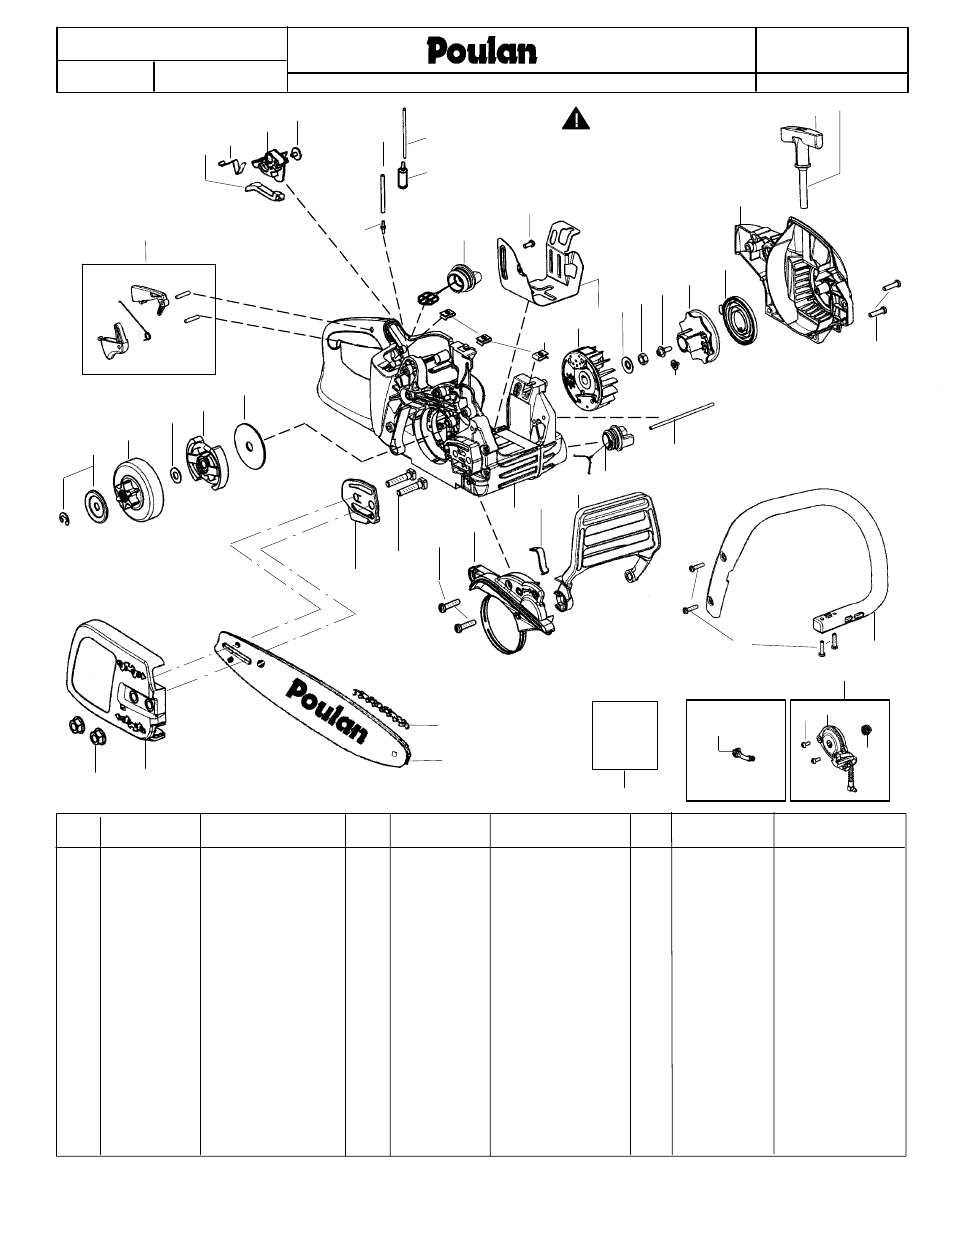 Poulan Pro Wiring Diagram - Building Wiring on lawn mower wiring diagram, old toro riding mowers diagram, bolens loader, bolens riding lawn mower diagram, parts of a tractor trailer truck diagram, white outdoor lawn tractors belts diagram, small engine starter switch diagram, bolens diesel tractors, tractor-trailer pre-trip inspection diagram, troy-bilt bronco mower wiring diagram, bolens 38 in riding mower deck diagram, bolens lawn tractor fuse, bolens owner's manual, bolens lawn tractor models, 8n ford tractor steering parts diagram, starter generator wiring diagram, craftsman riding lawn mower tractor diagram, mtd lawn tractor diagram, bolens 38 lawn tractor, craftsman riding lawn mower steering parts diagram,